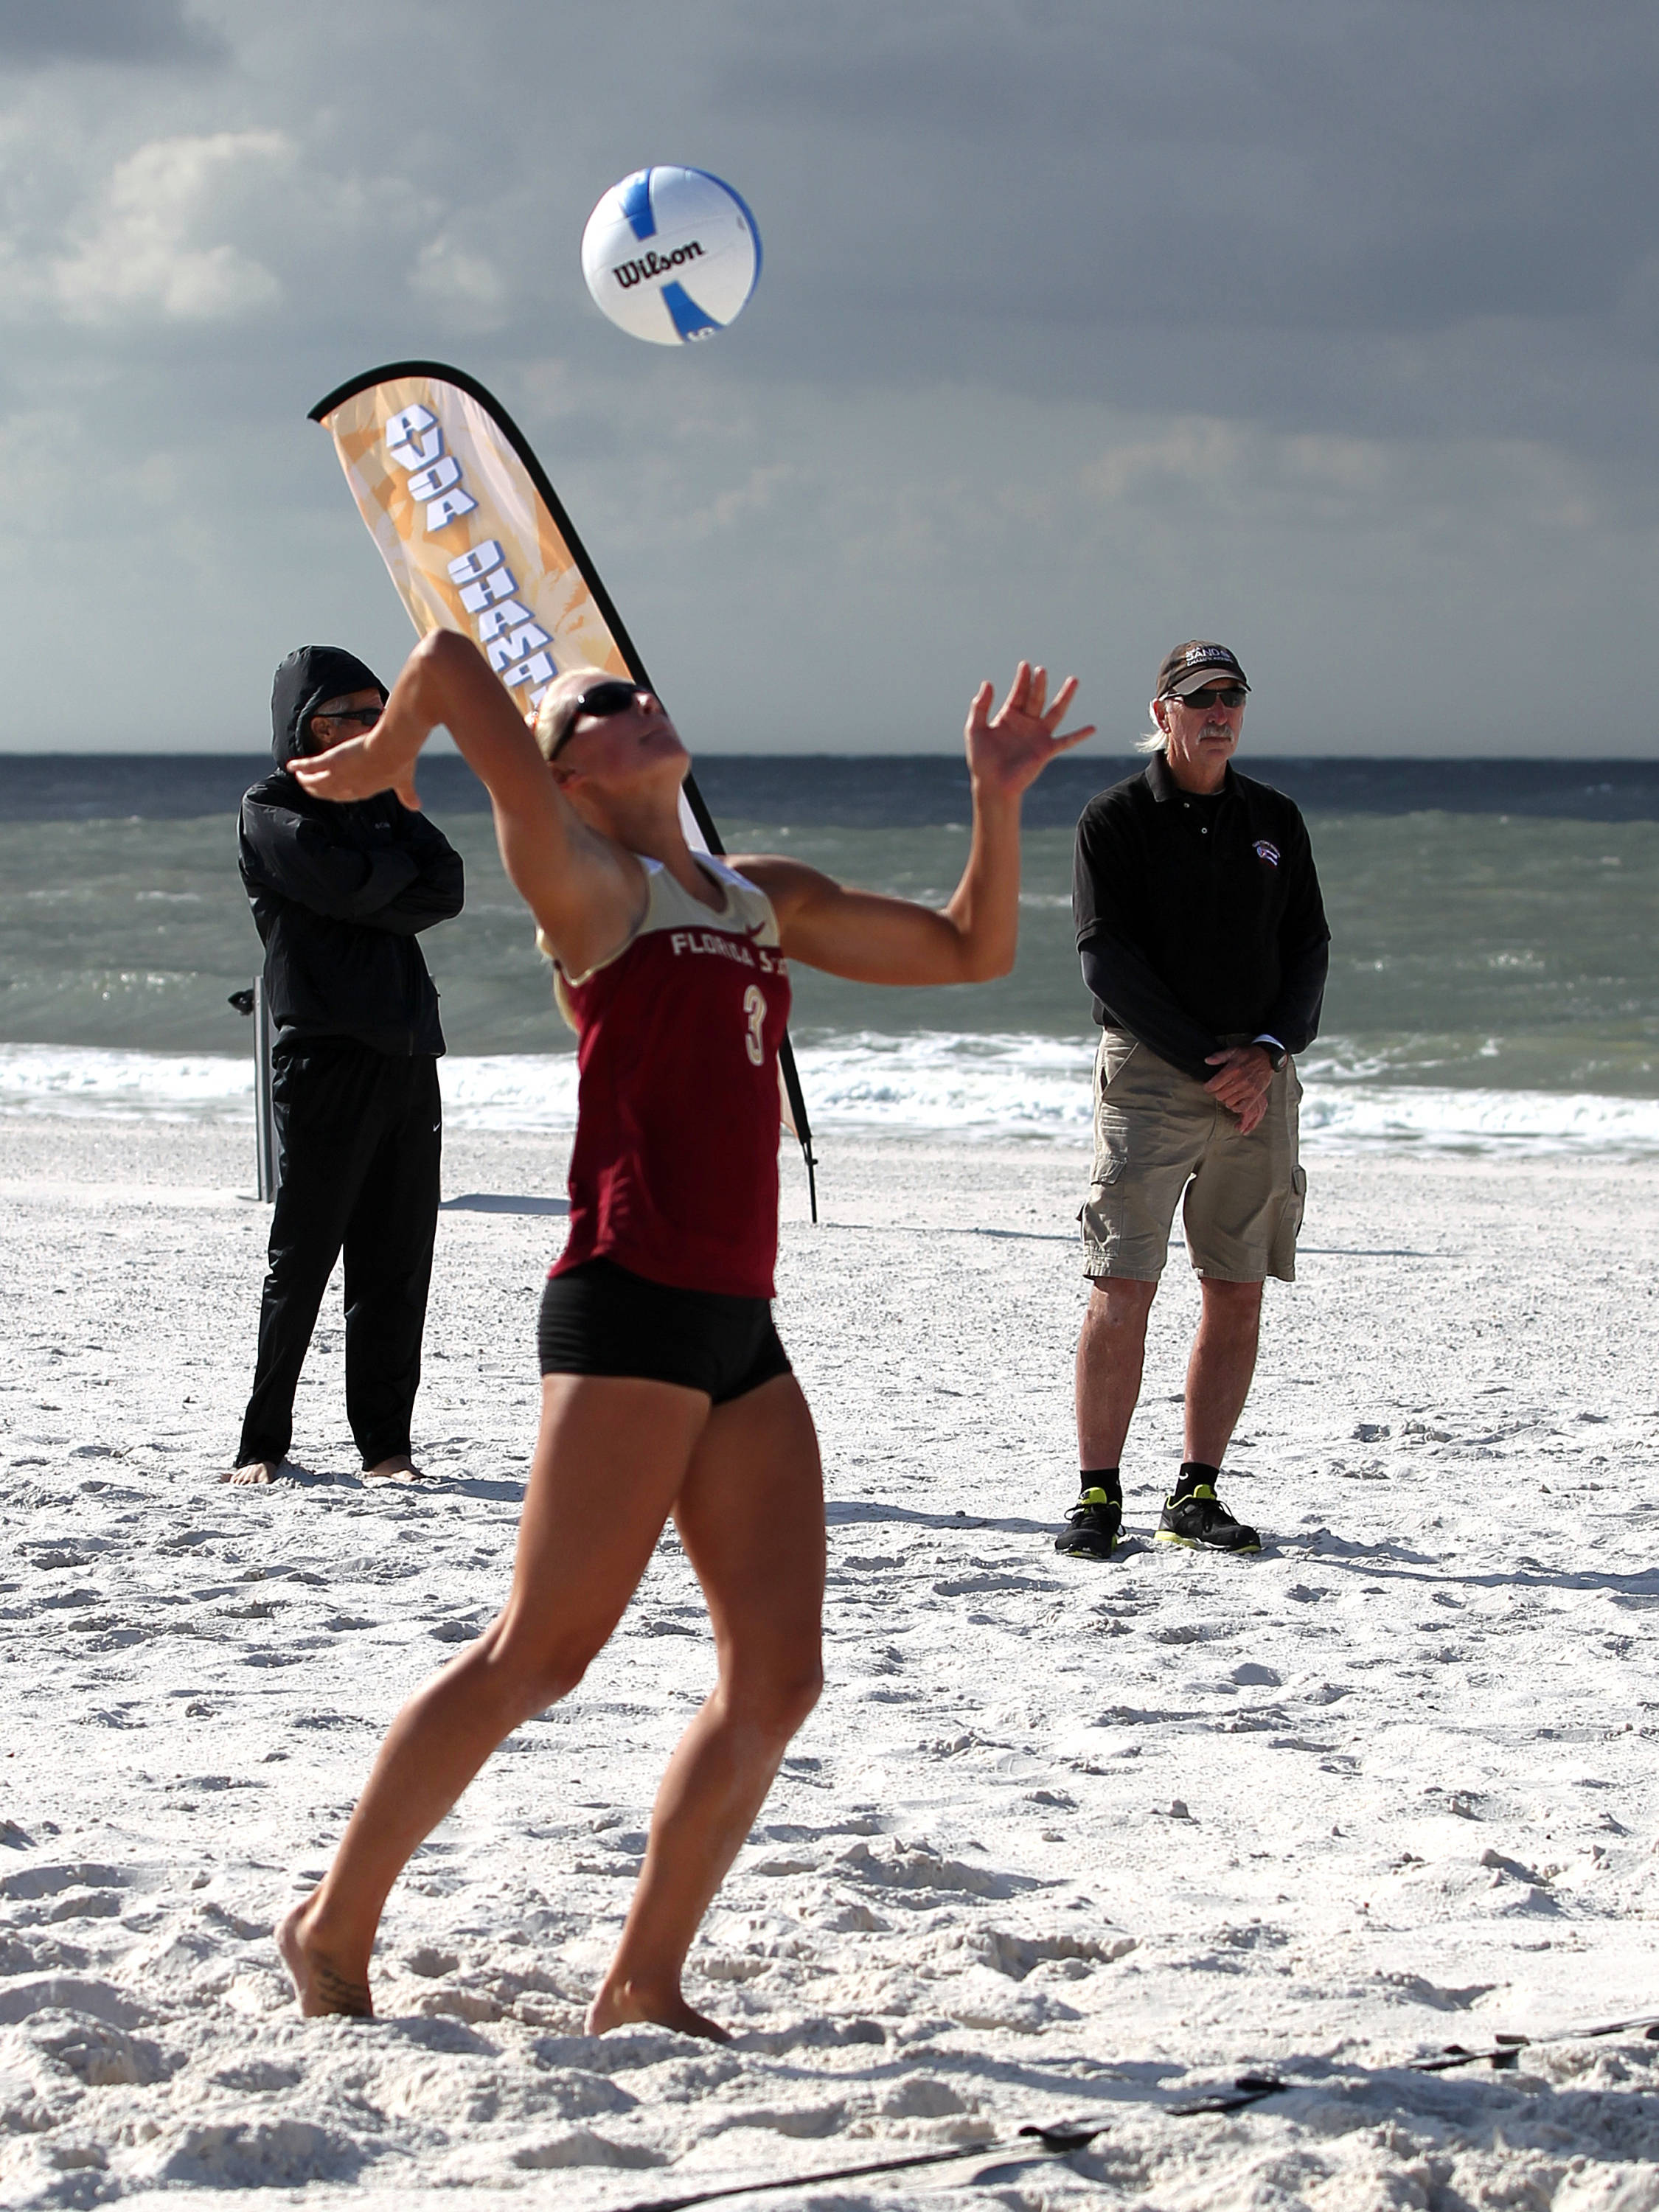 Julie Brown, AVCA Collegiate Sand Volleyball National  Championships - Pairs,  Gulf Shores, Alabama, 05/05/13 . (Photo by Steve Musco)